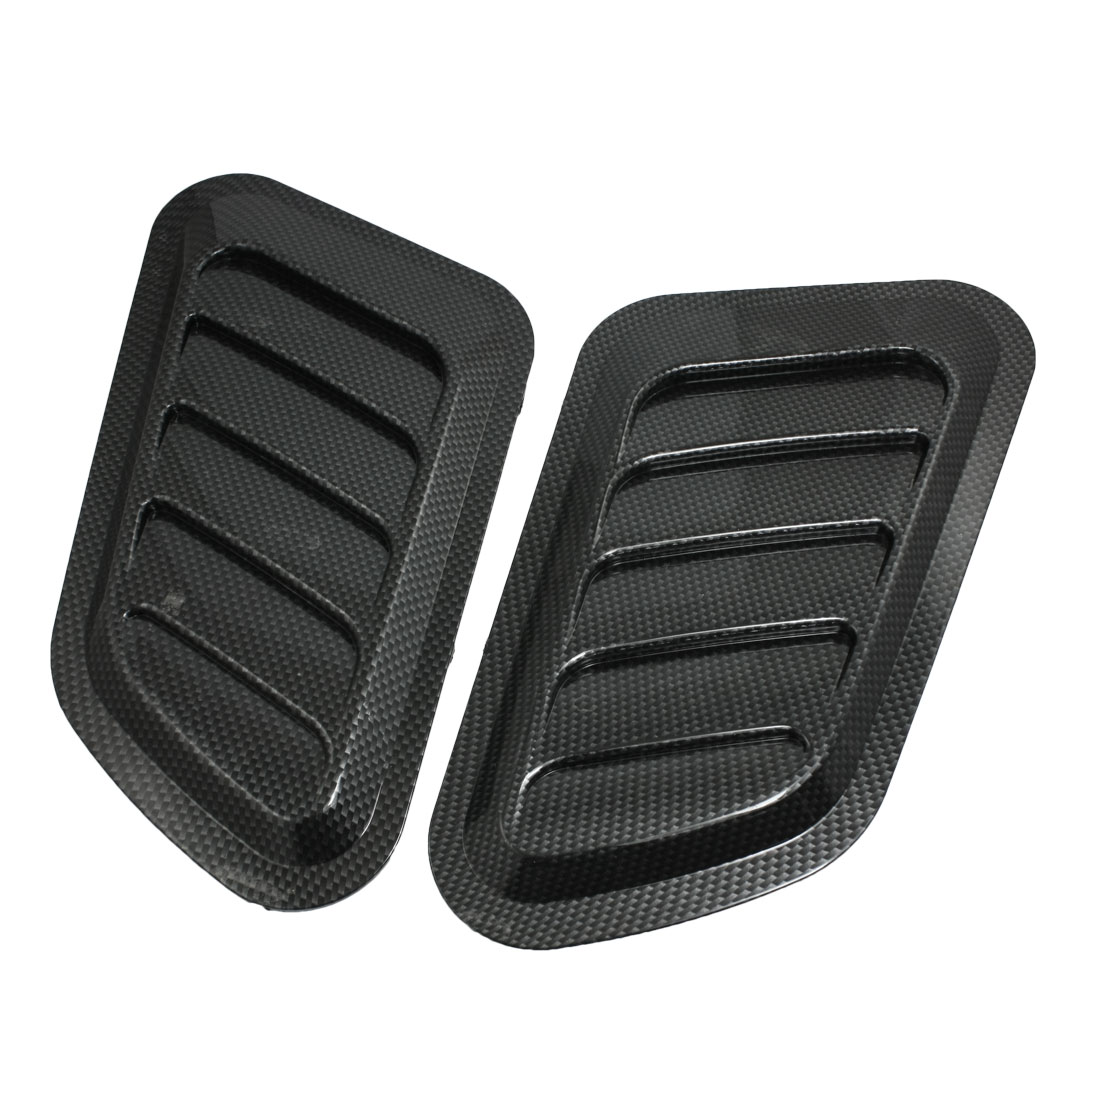 Car Engine Hood Bumper Air Scoop Vent Side Fender Cover Decor Black 2 Pcs